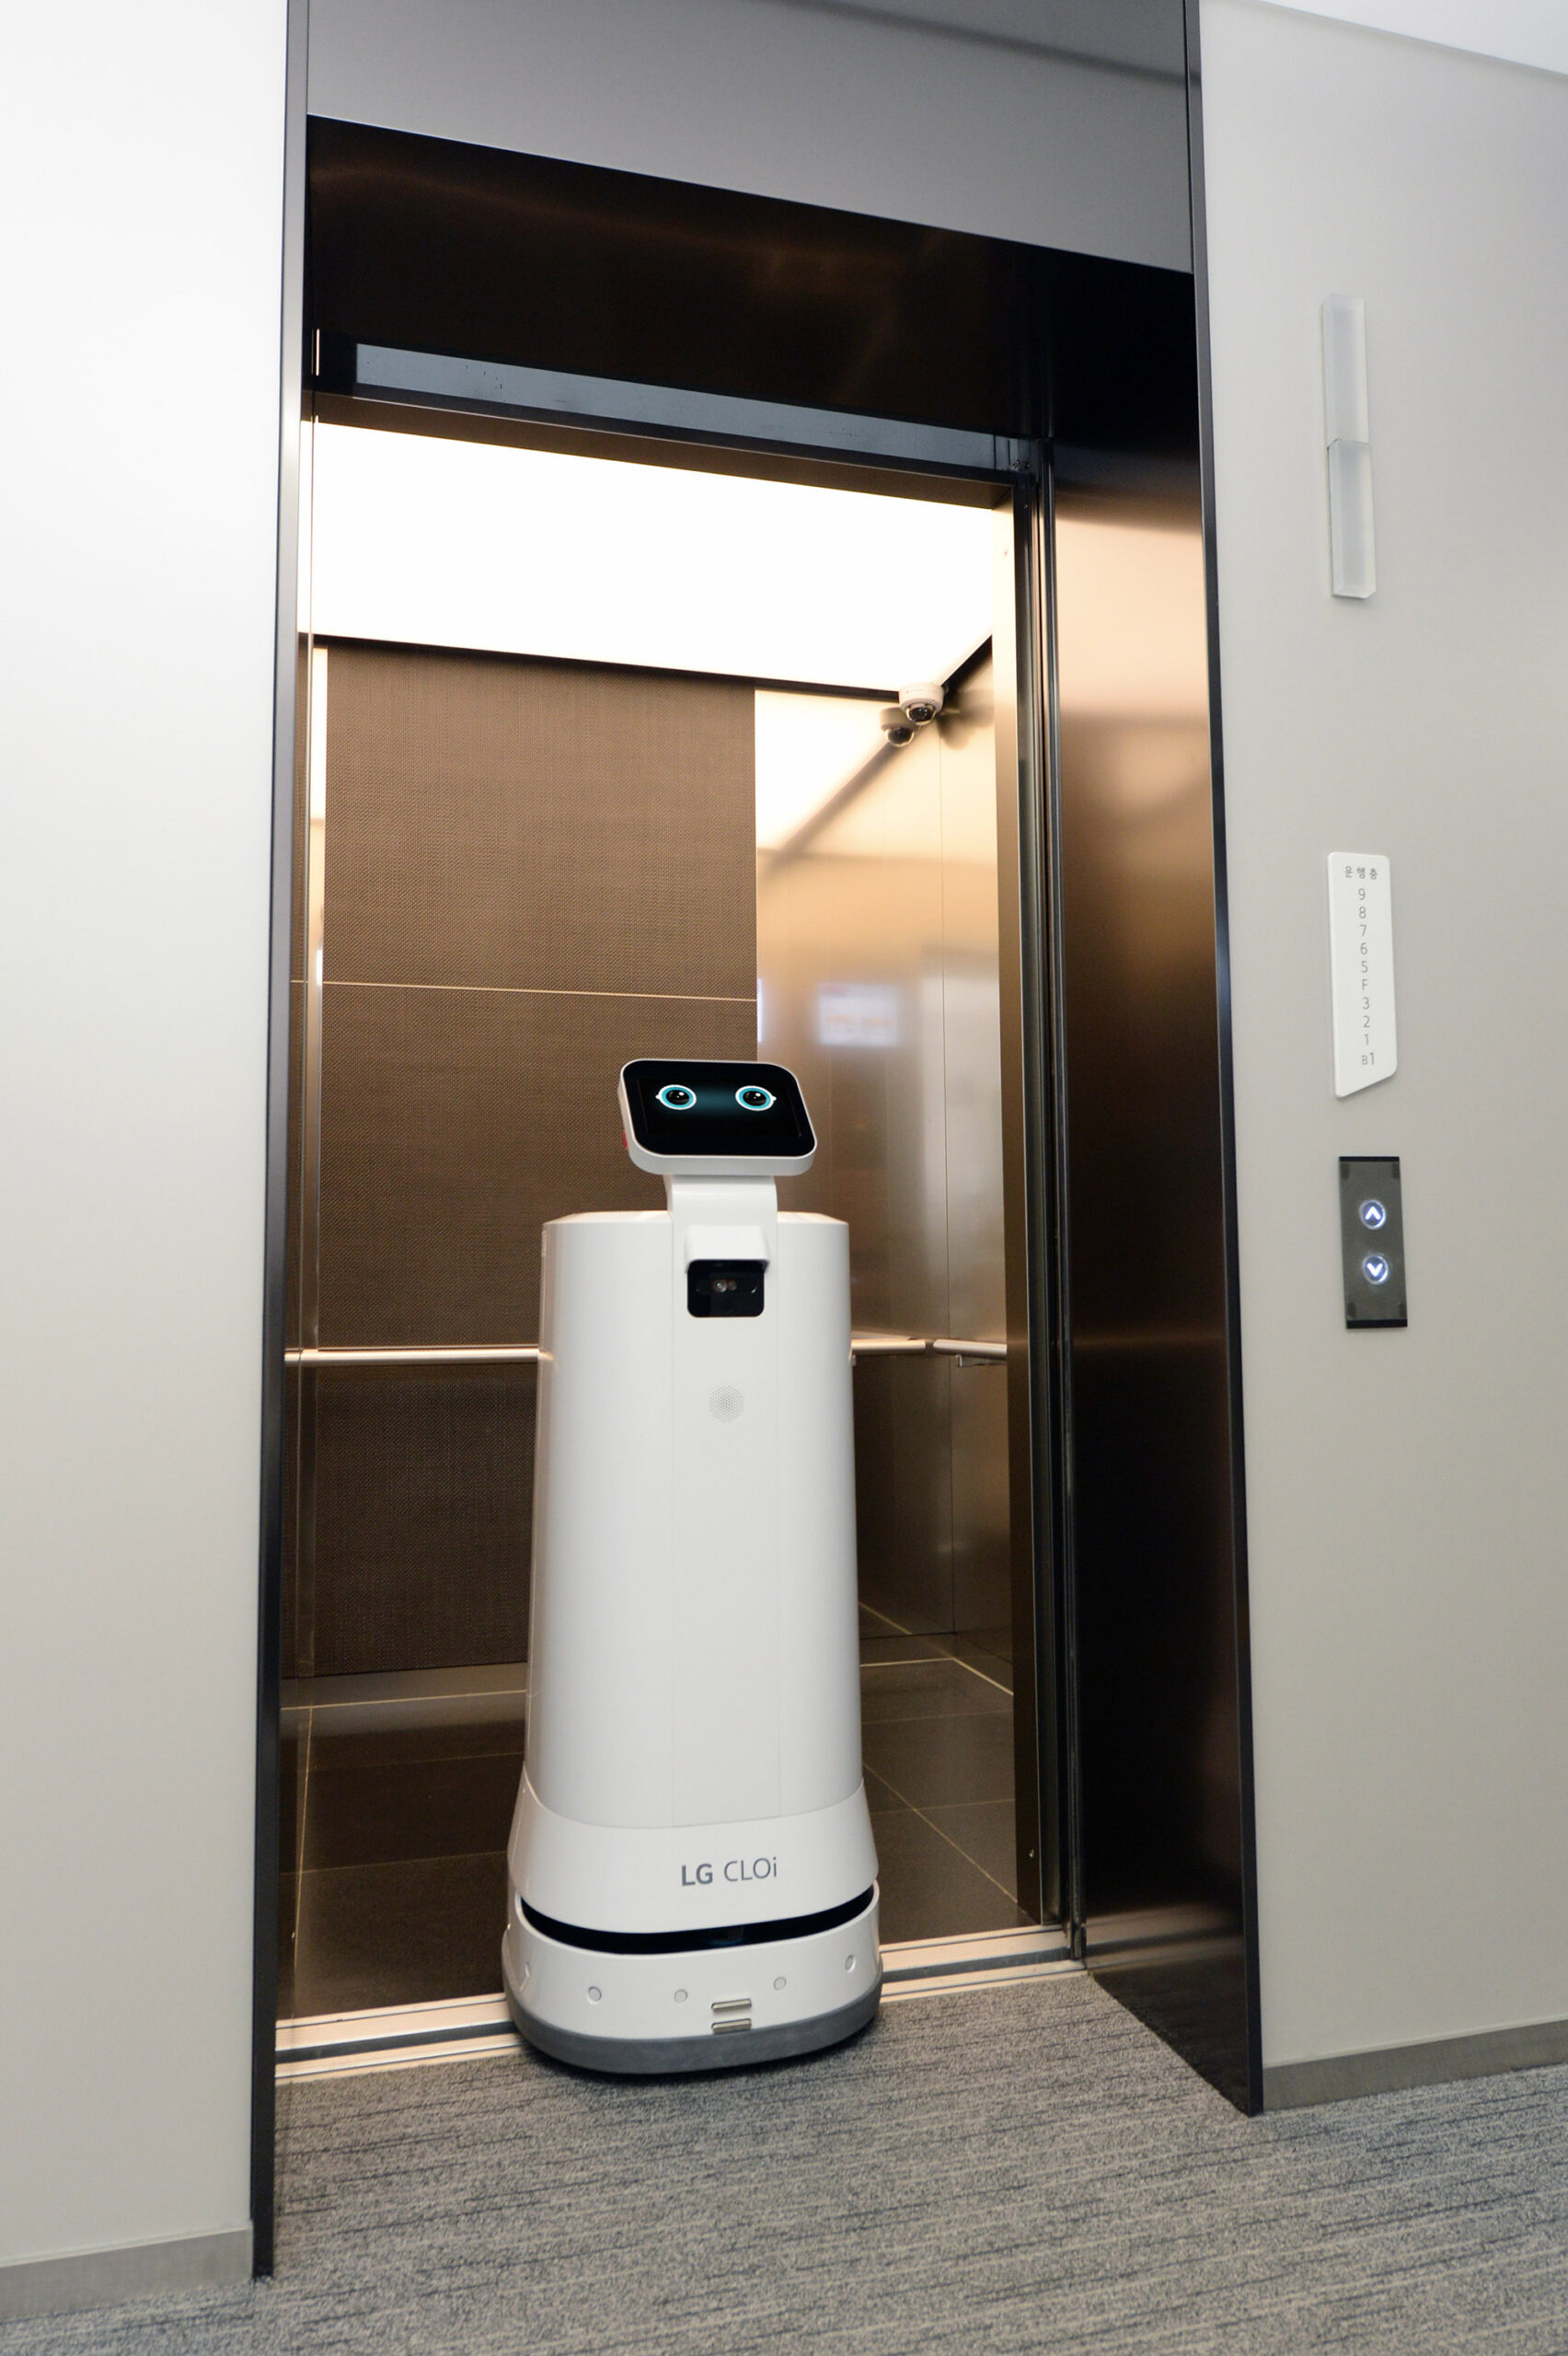 LG CLOi ServeBot exiting an elevator